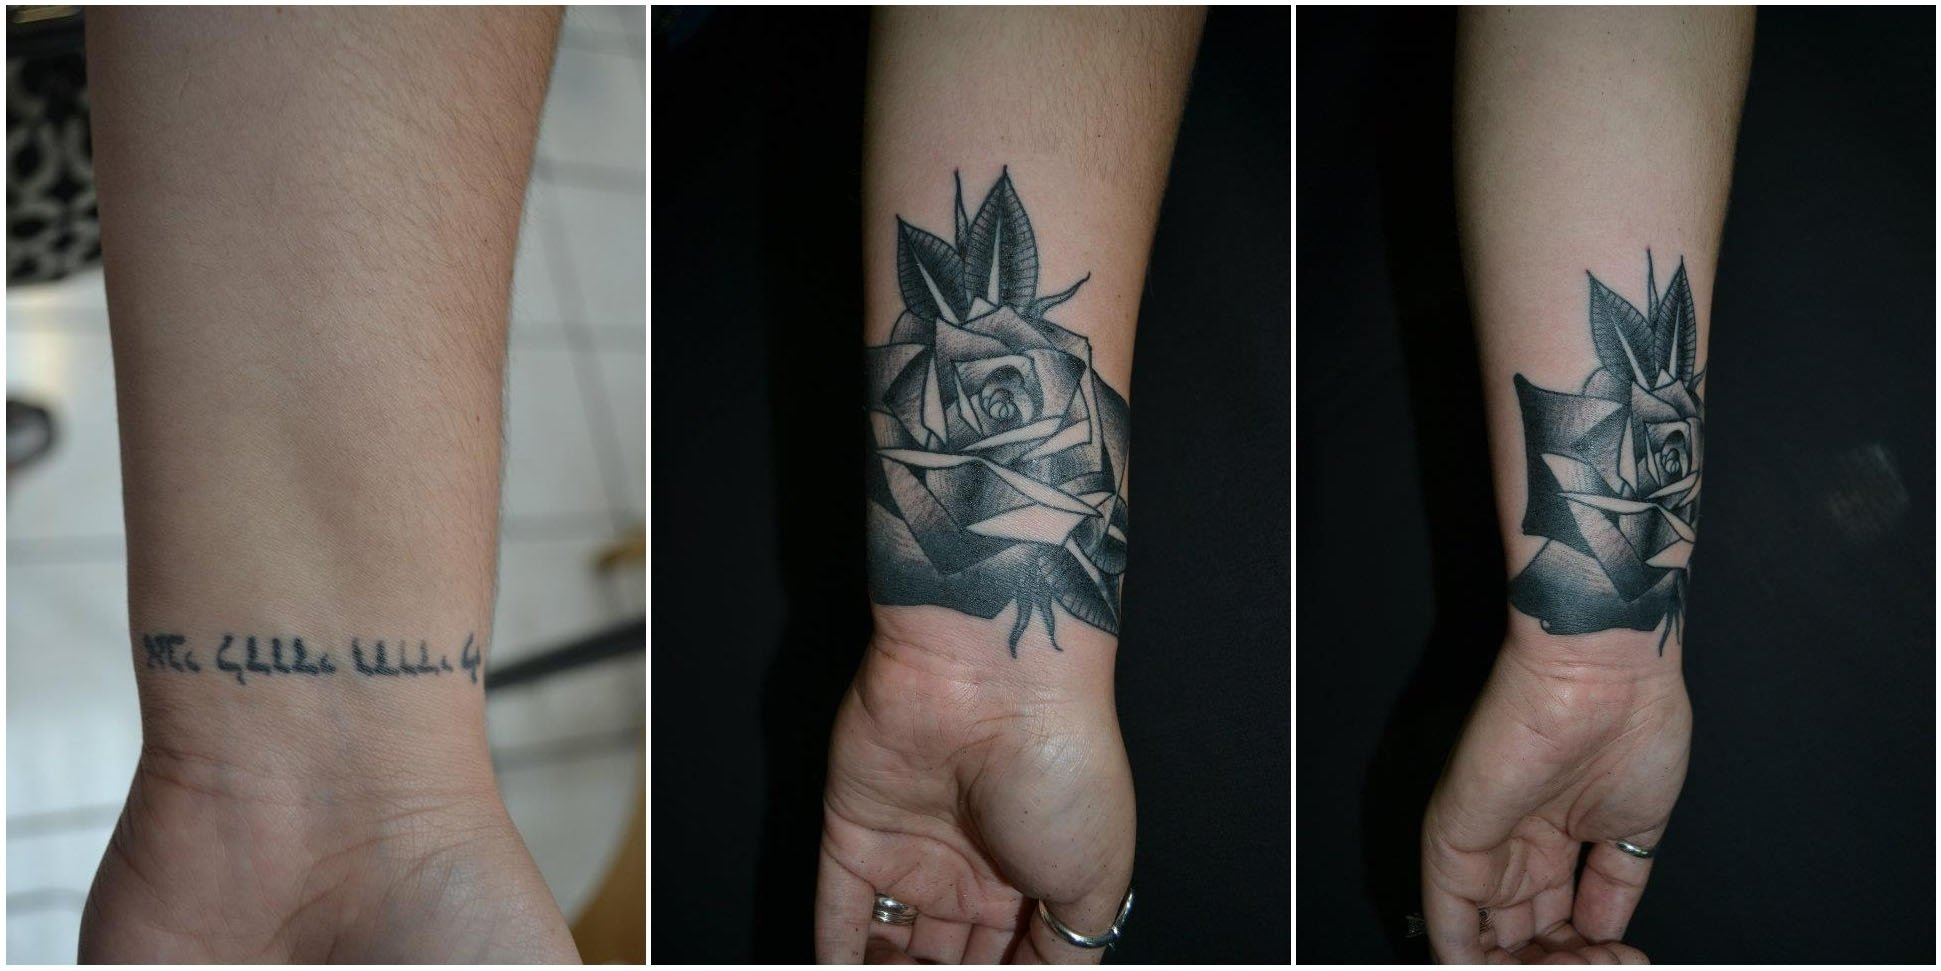 10 Stylish Large Tattoo Cover Up Ideas lotus tattoo raymond wallace tattooing black rose cover up 2 2020